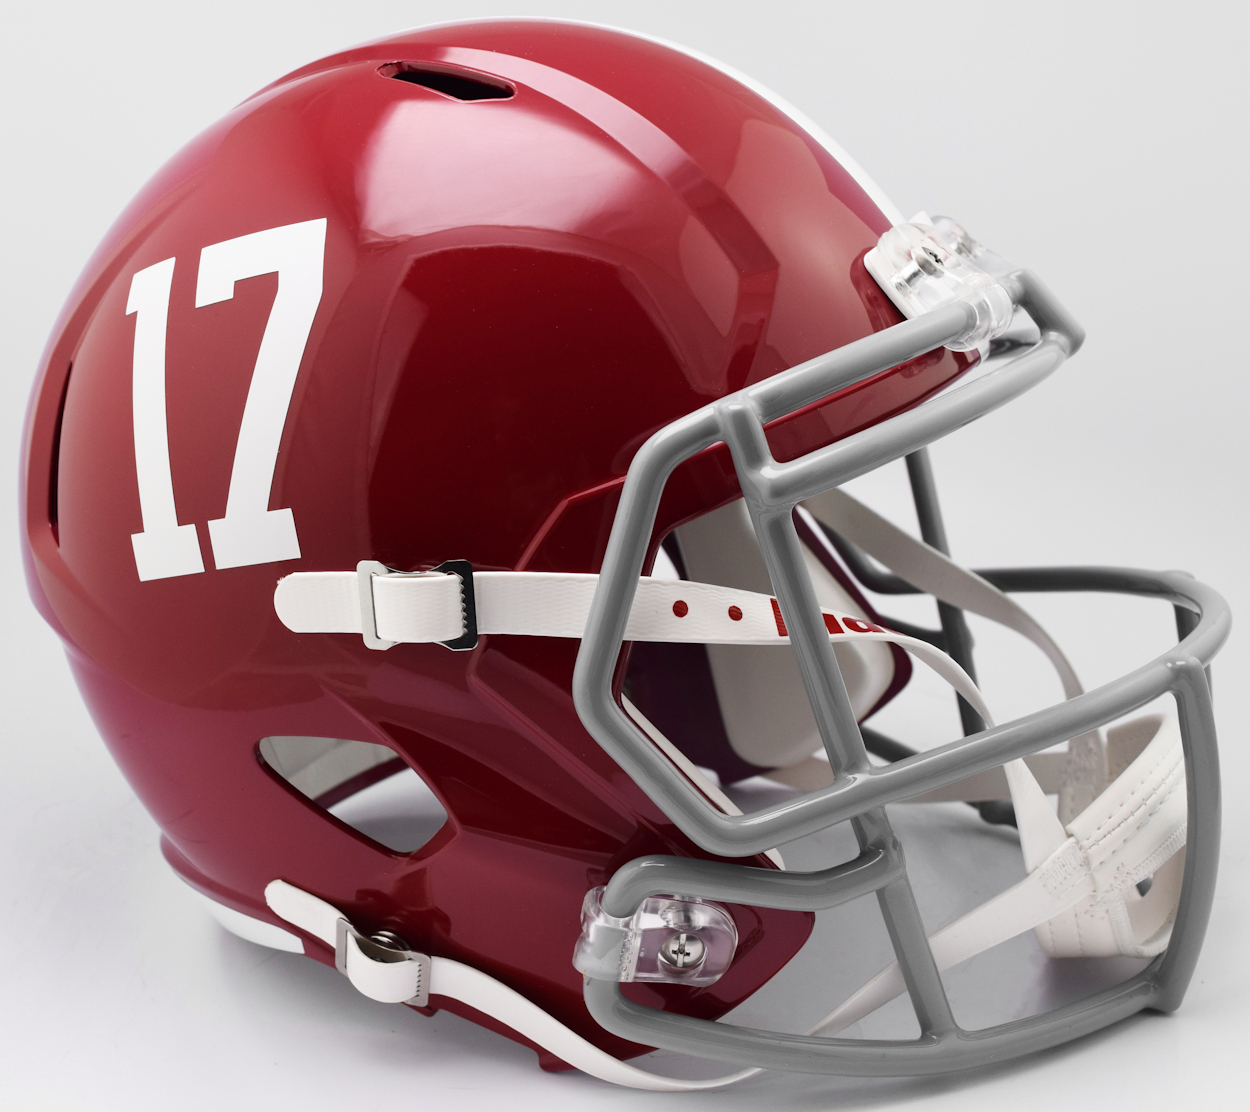 Alabama Crimson Tide Speed Replica Football Helmet #17 <B>NEW 2018</B>